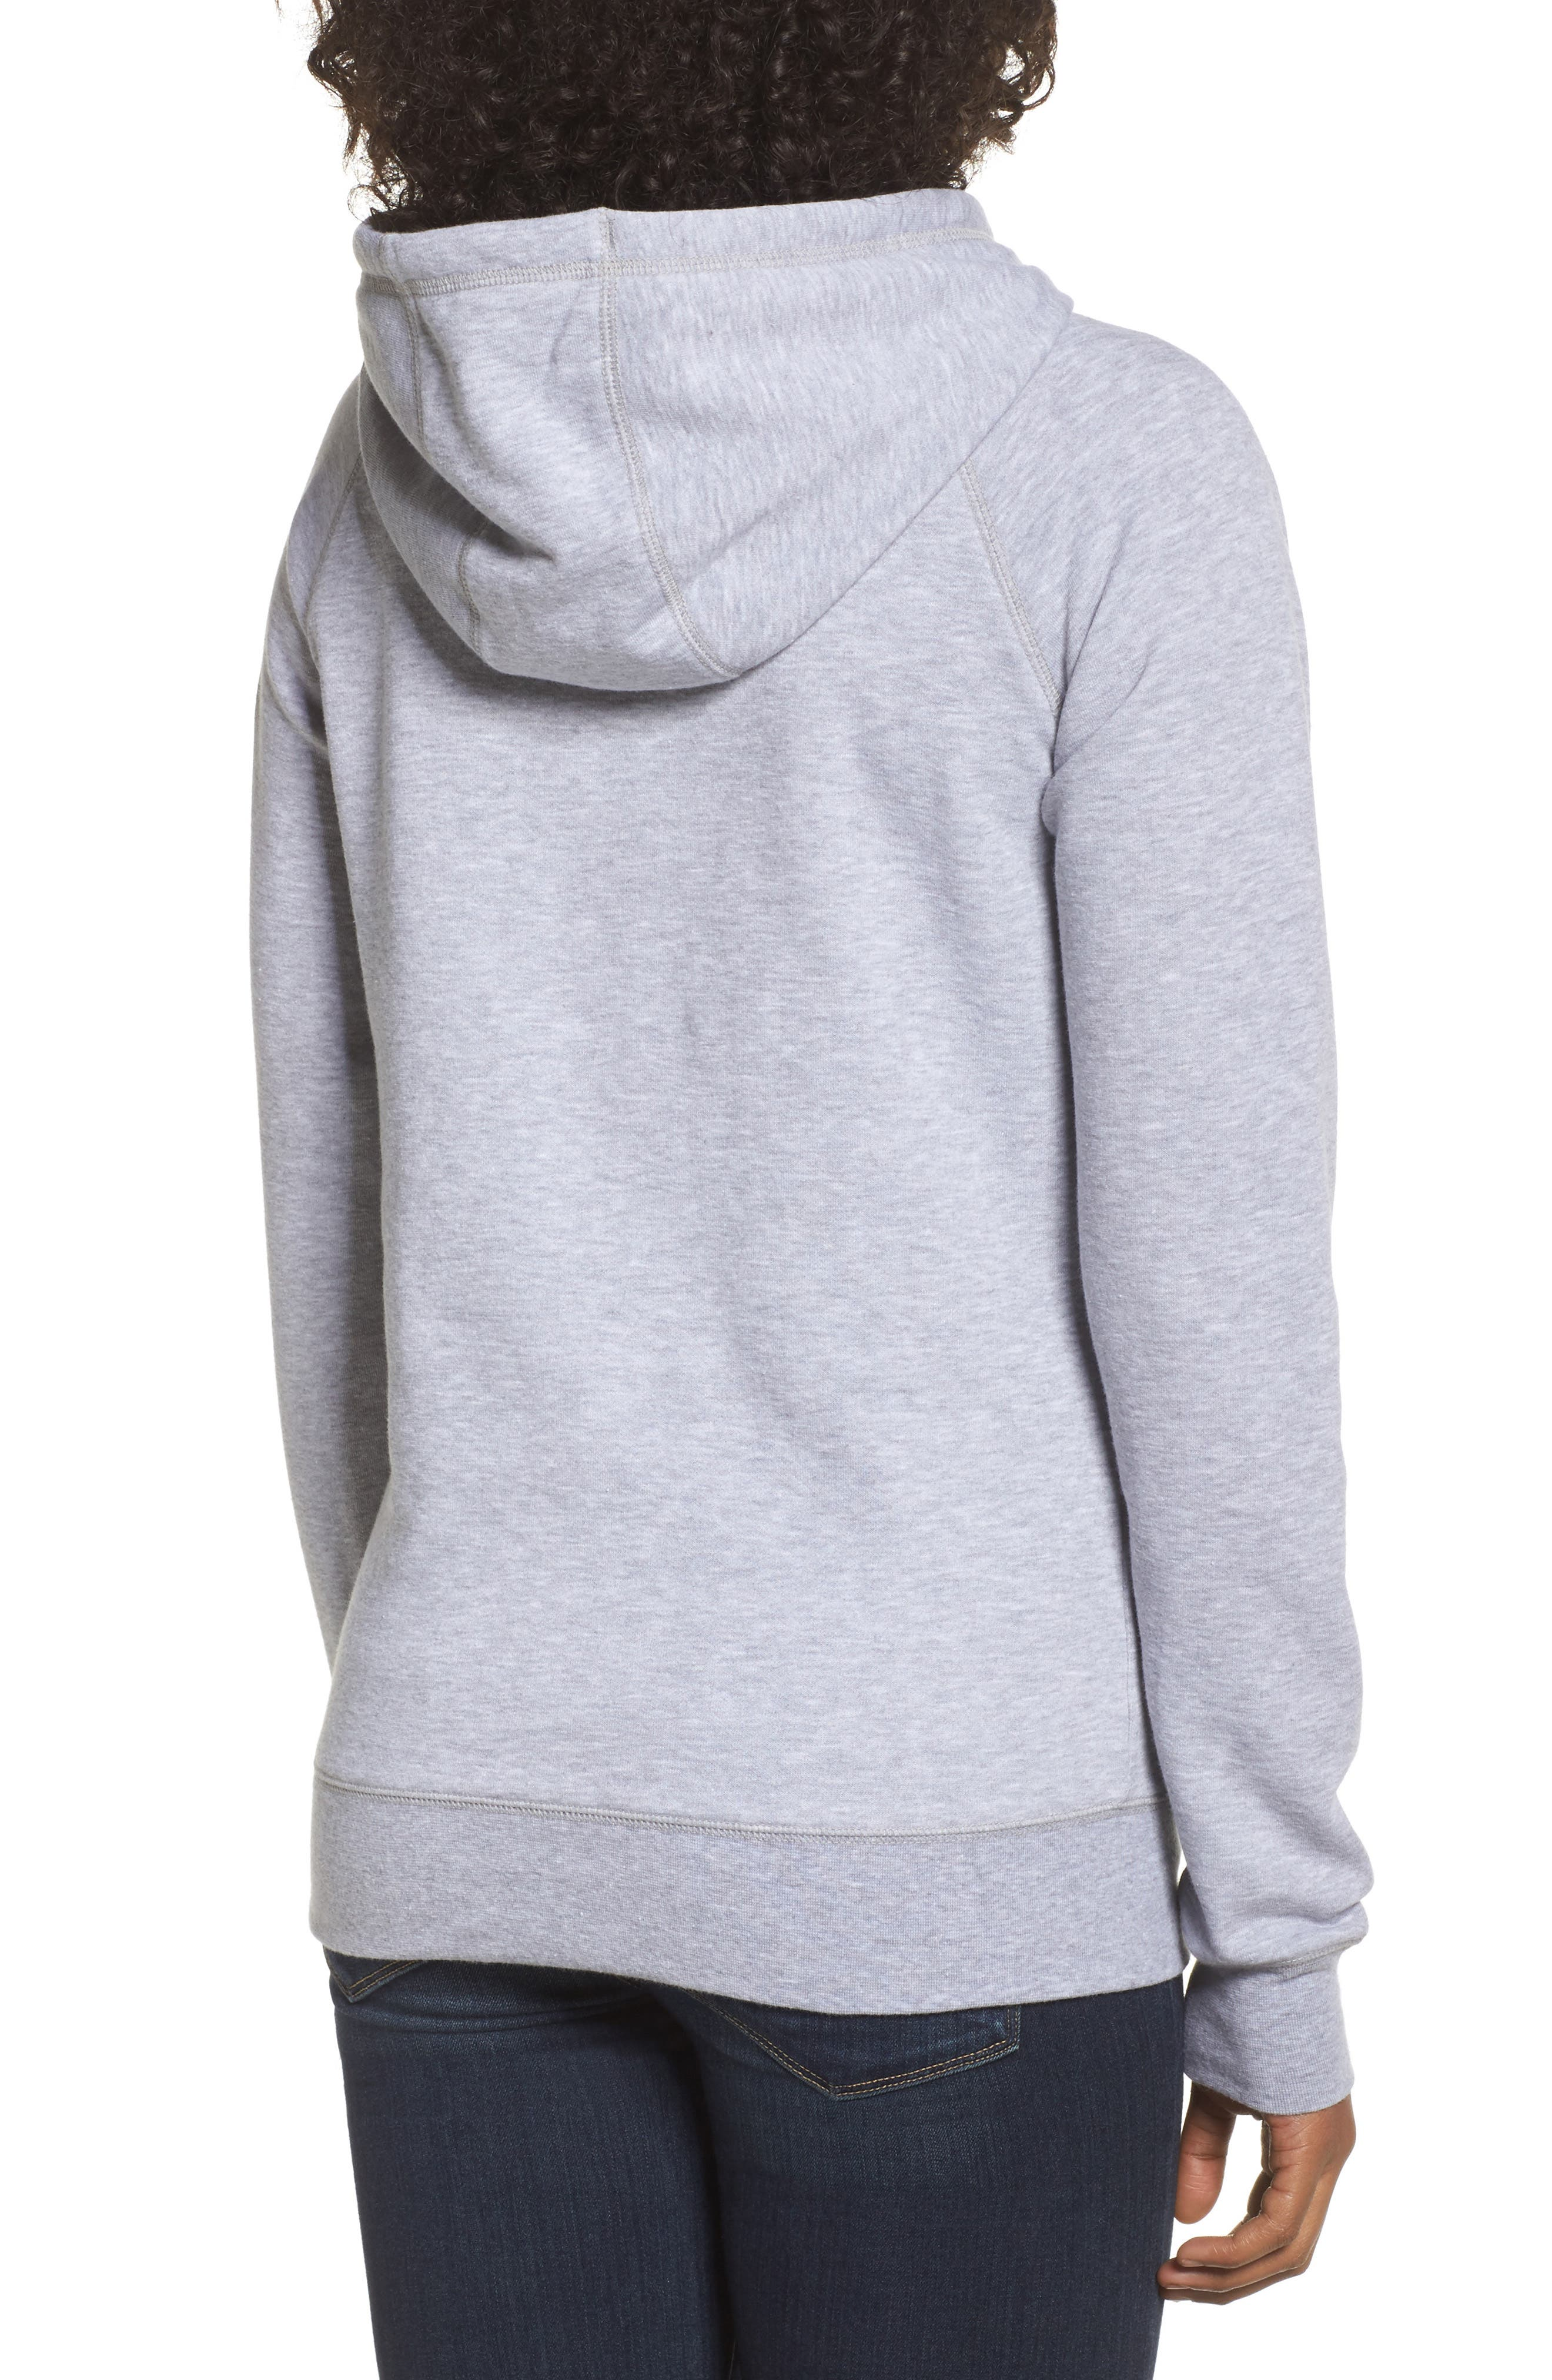 International Collection USA Pullover Hoodie,                             Alternate thumbnail 2, color,                             Tnf Light Grey Heather